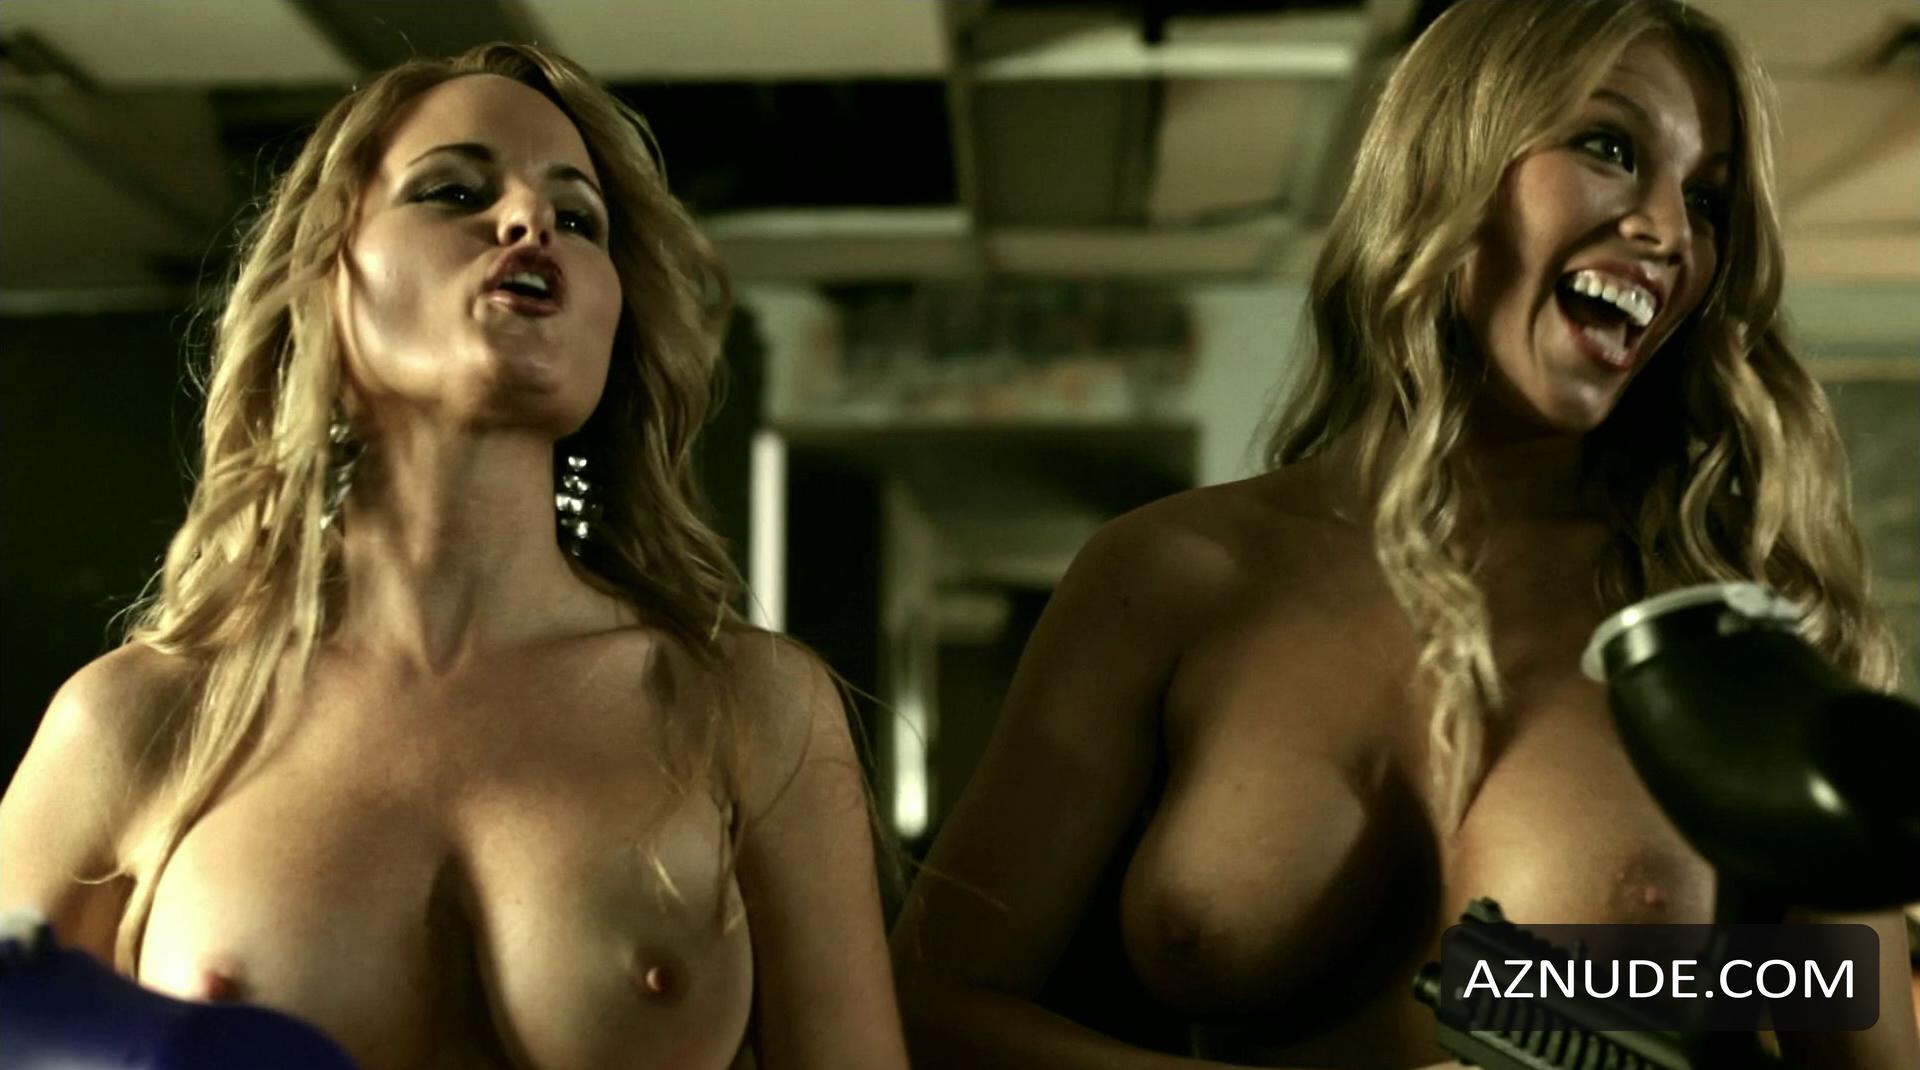 Angela Covello Nude browse celebrity two nude women images - page 6 - aznude